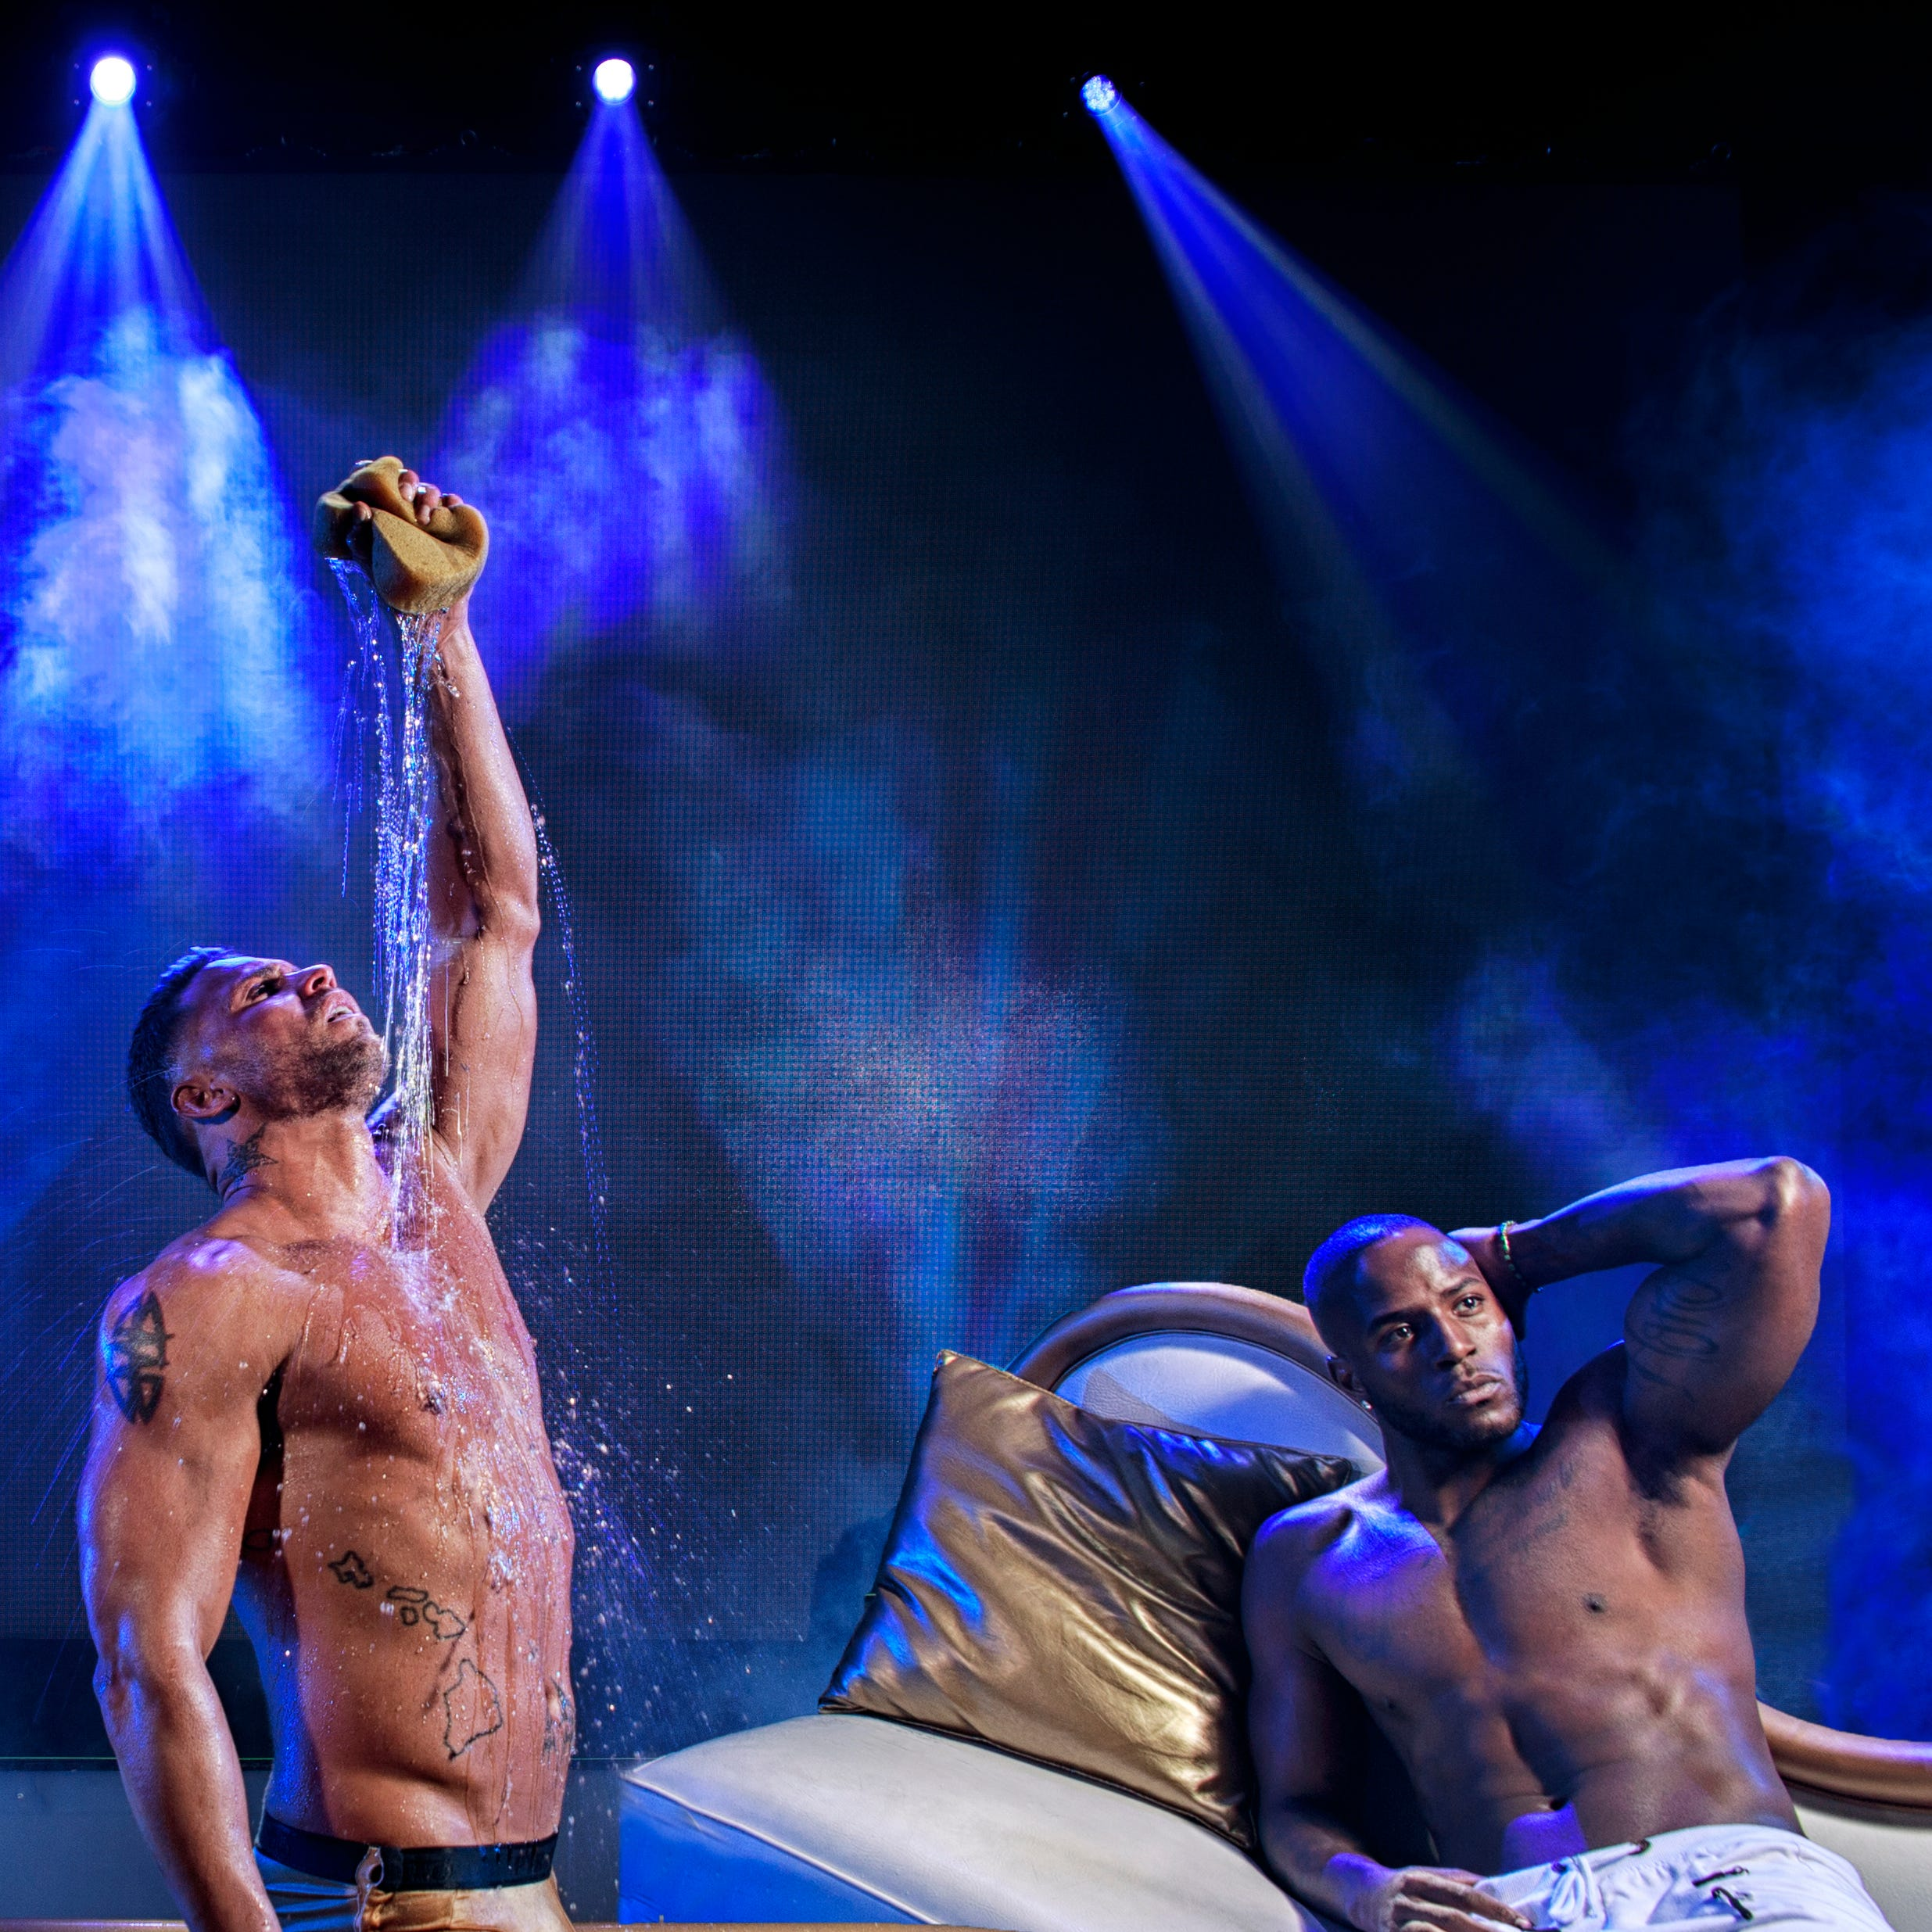 Chippendales to strip away the winter blues in Wilmington on Wednesday